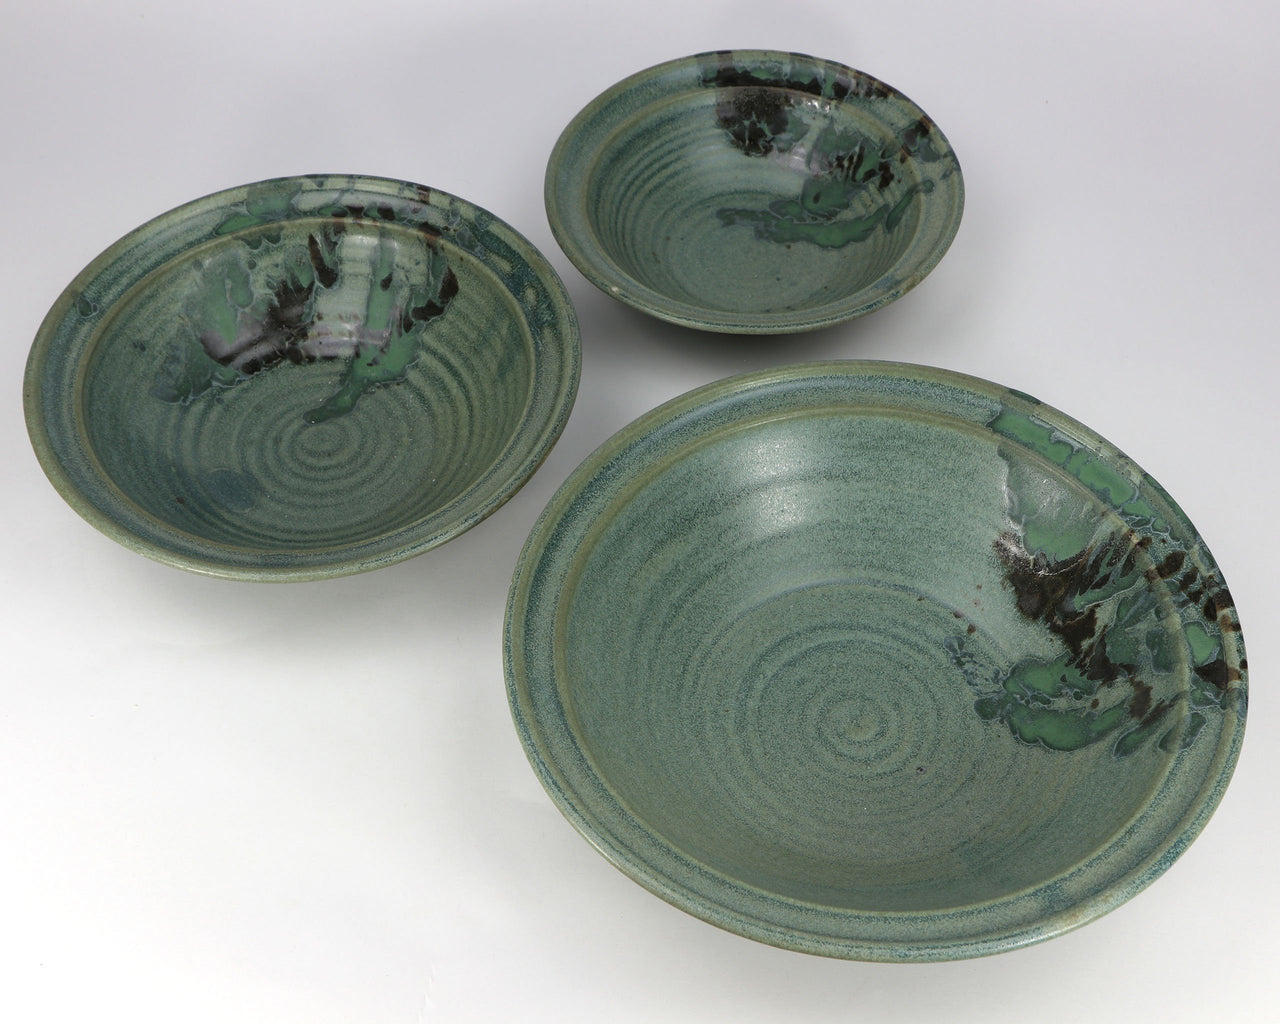 3-Piece Nesting Serving Bowl Set (24-64 oz.): Jade Green Fern Pattern